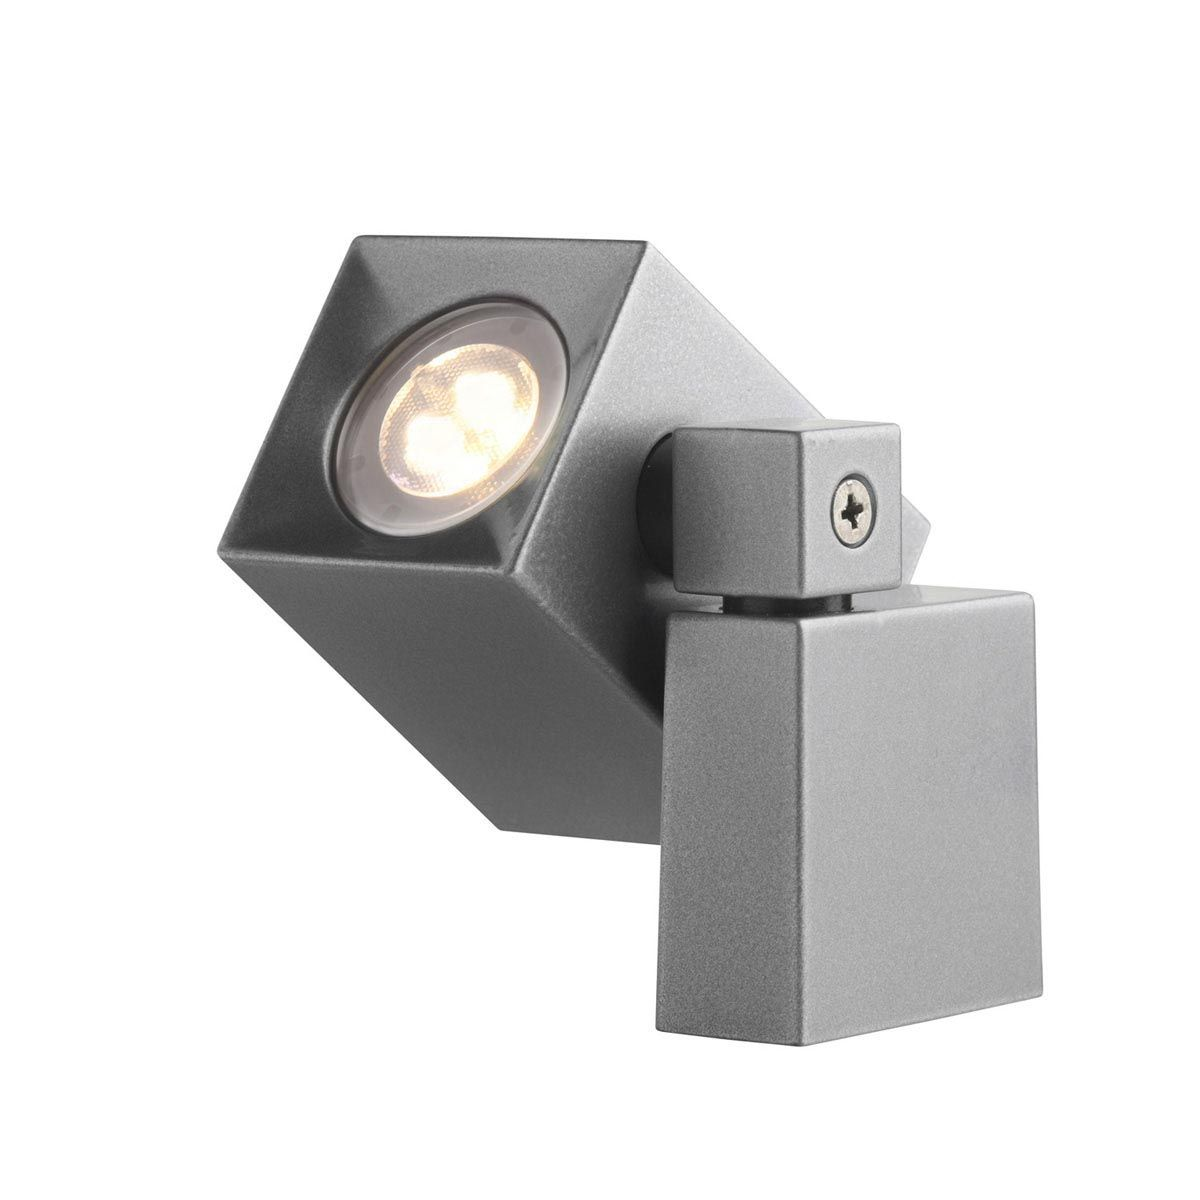 Wandleuchte Quartz, Aluminium, anthrazit, 2 W LED, warmweiss, 12 V, 105 x 50 x 85 mm